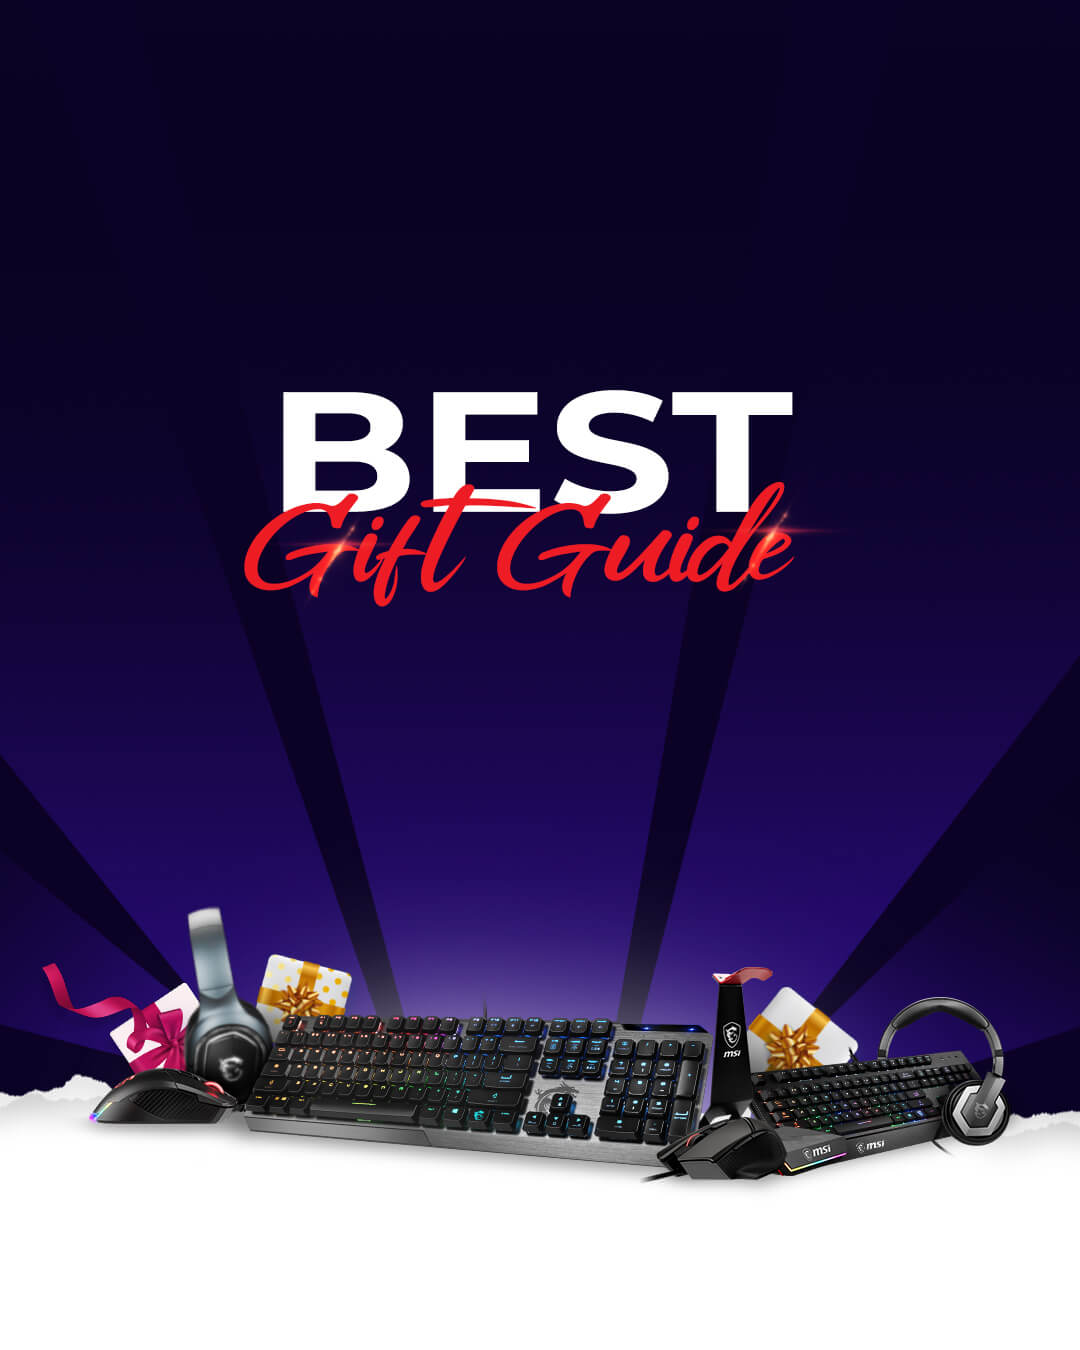 Best Gift Guide